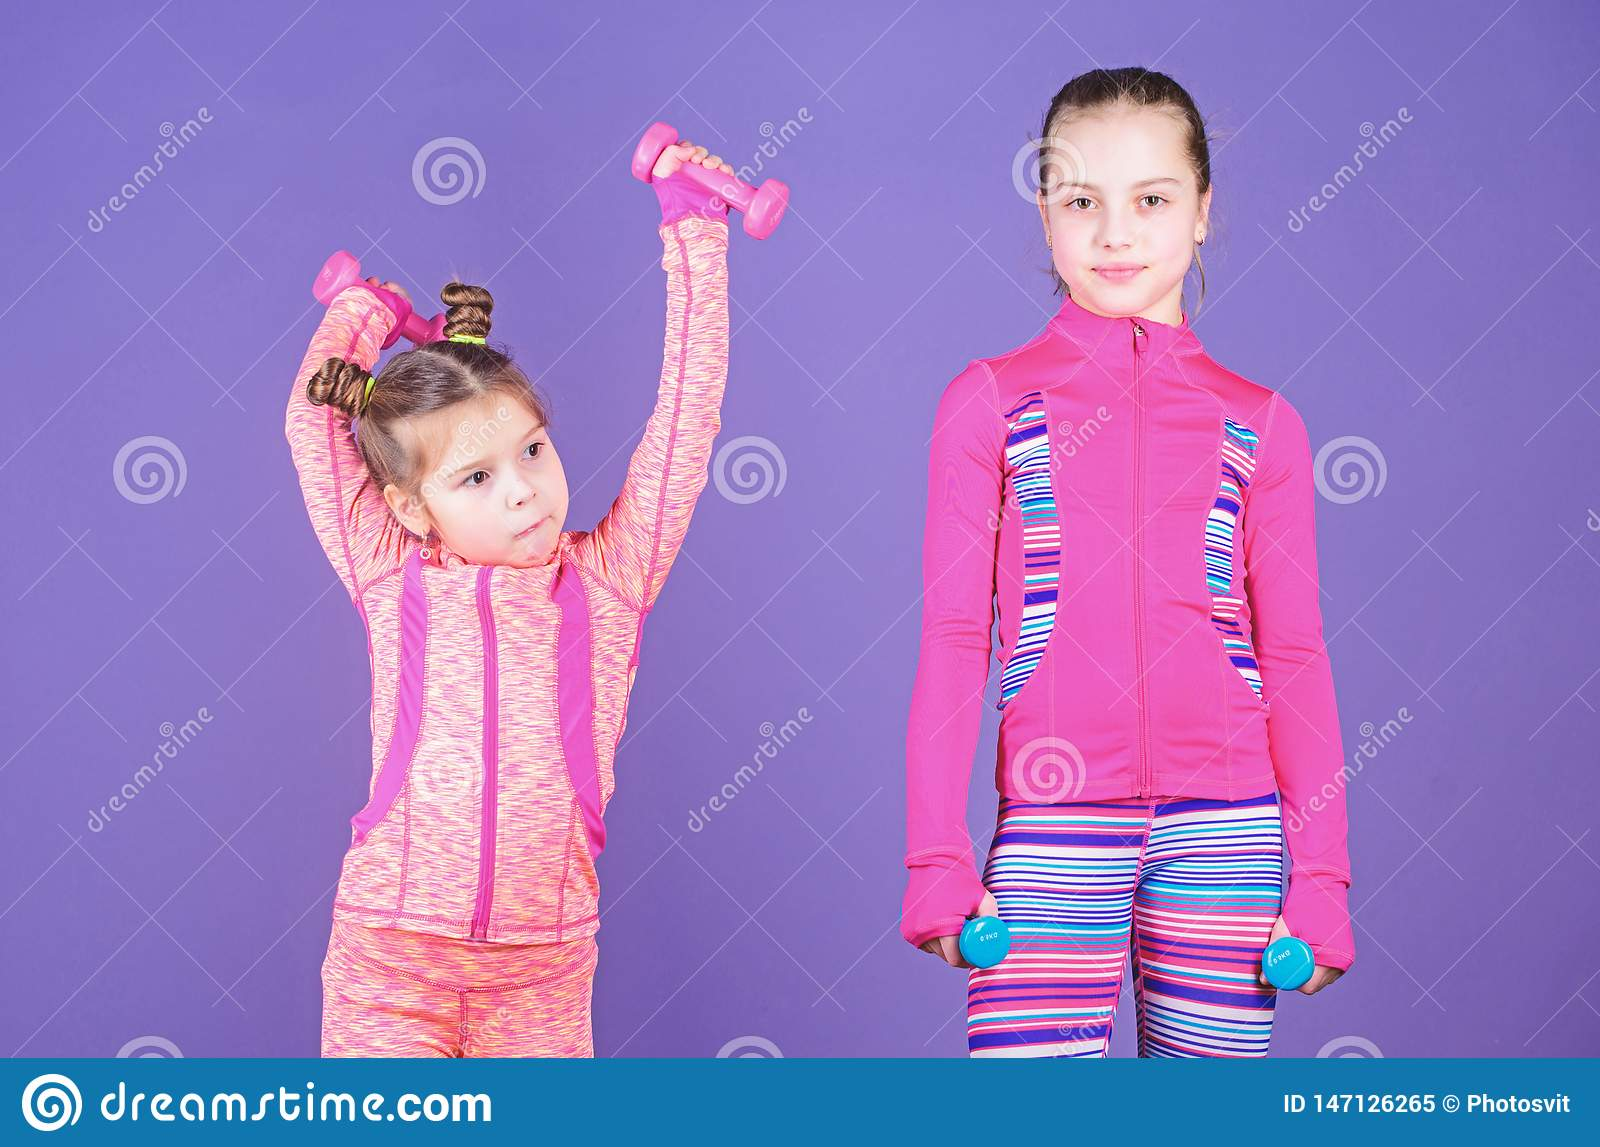 Following her sister. Girls cute kid exercising with dumbbells. Motivation and sport example concept. Toddler repeat